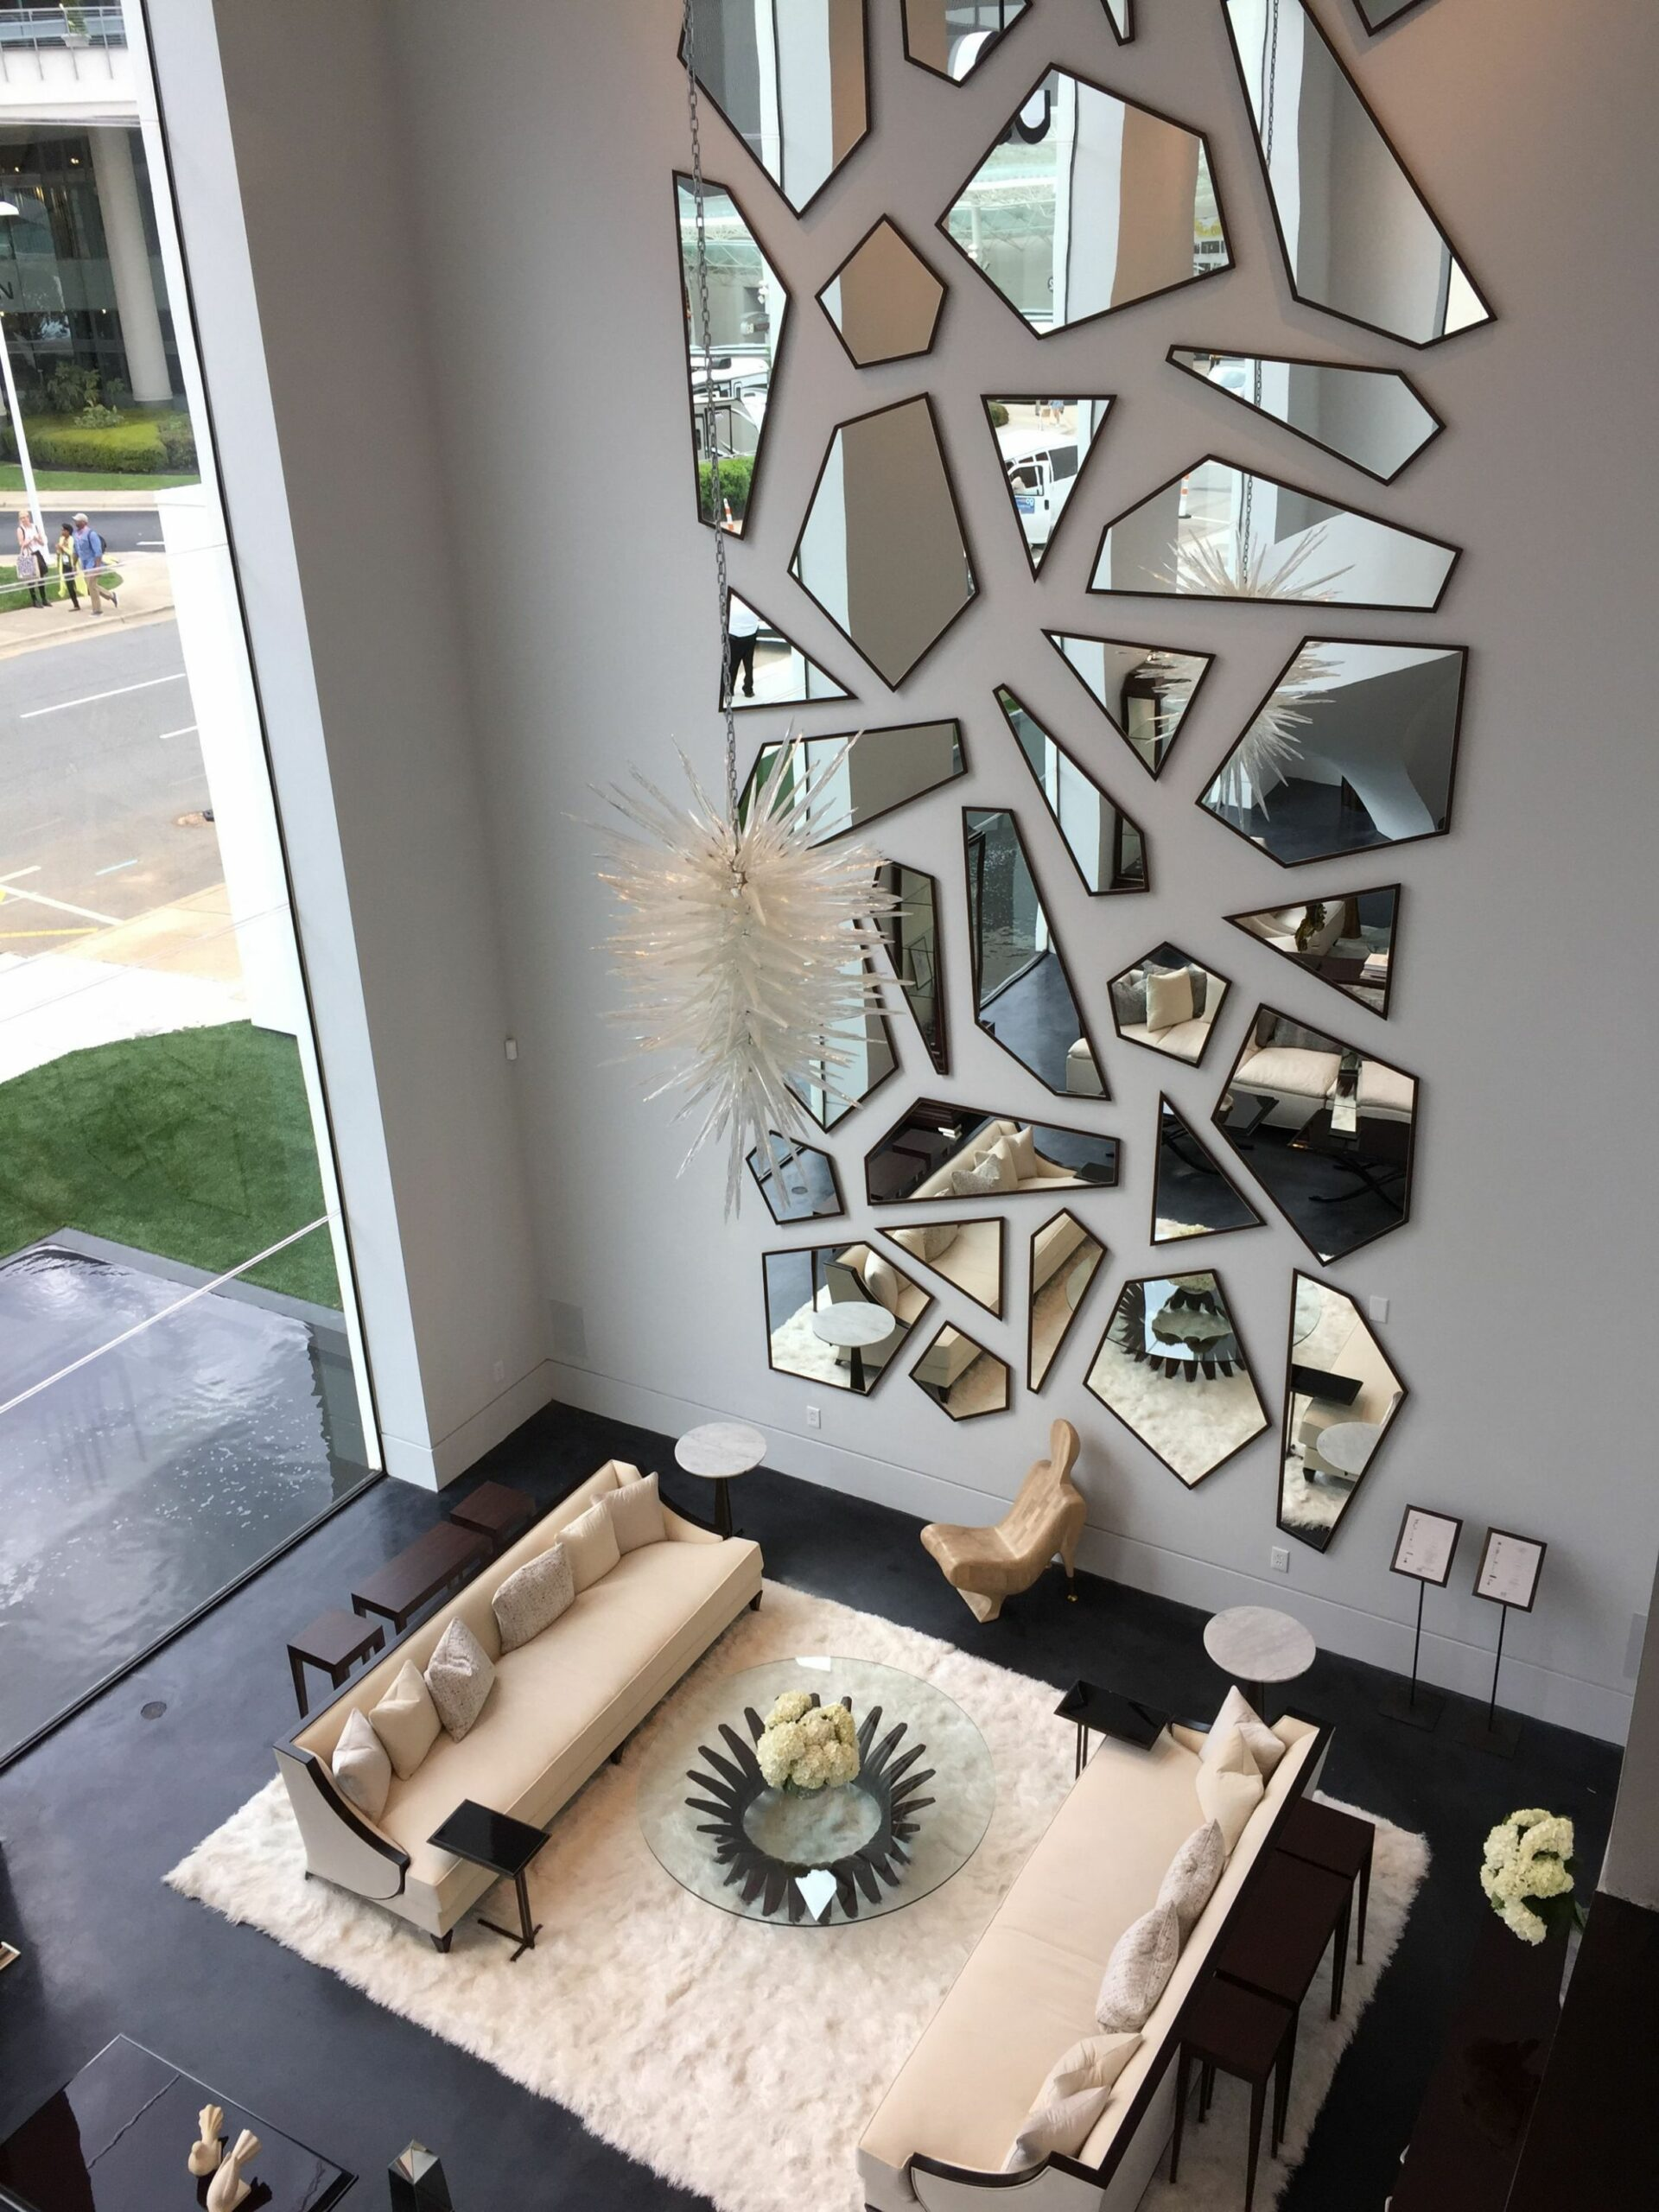 There are different kinds of mirrors. Full length mirrors, wall ..